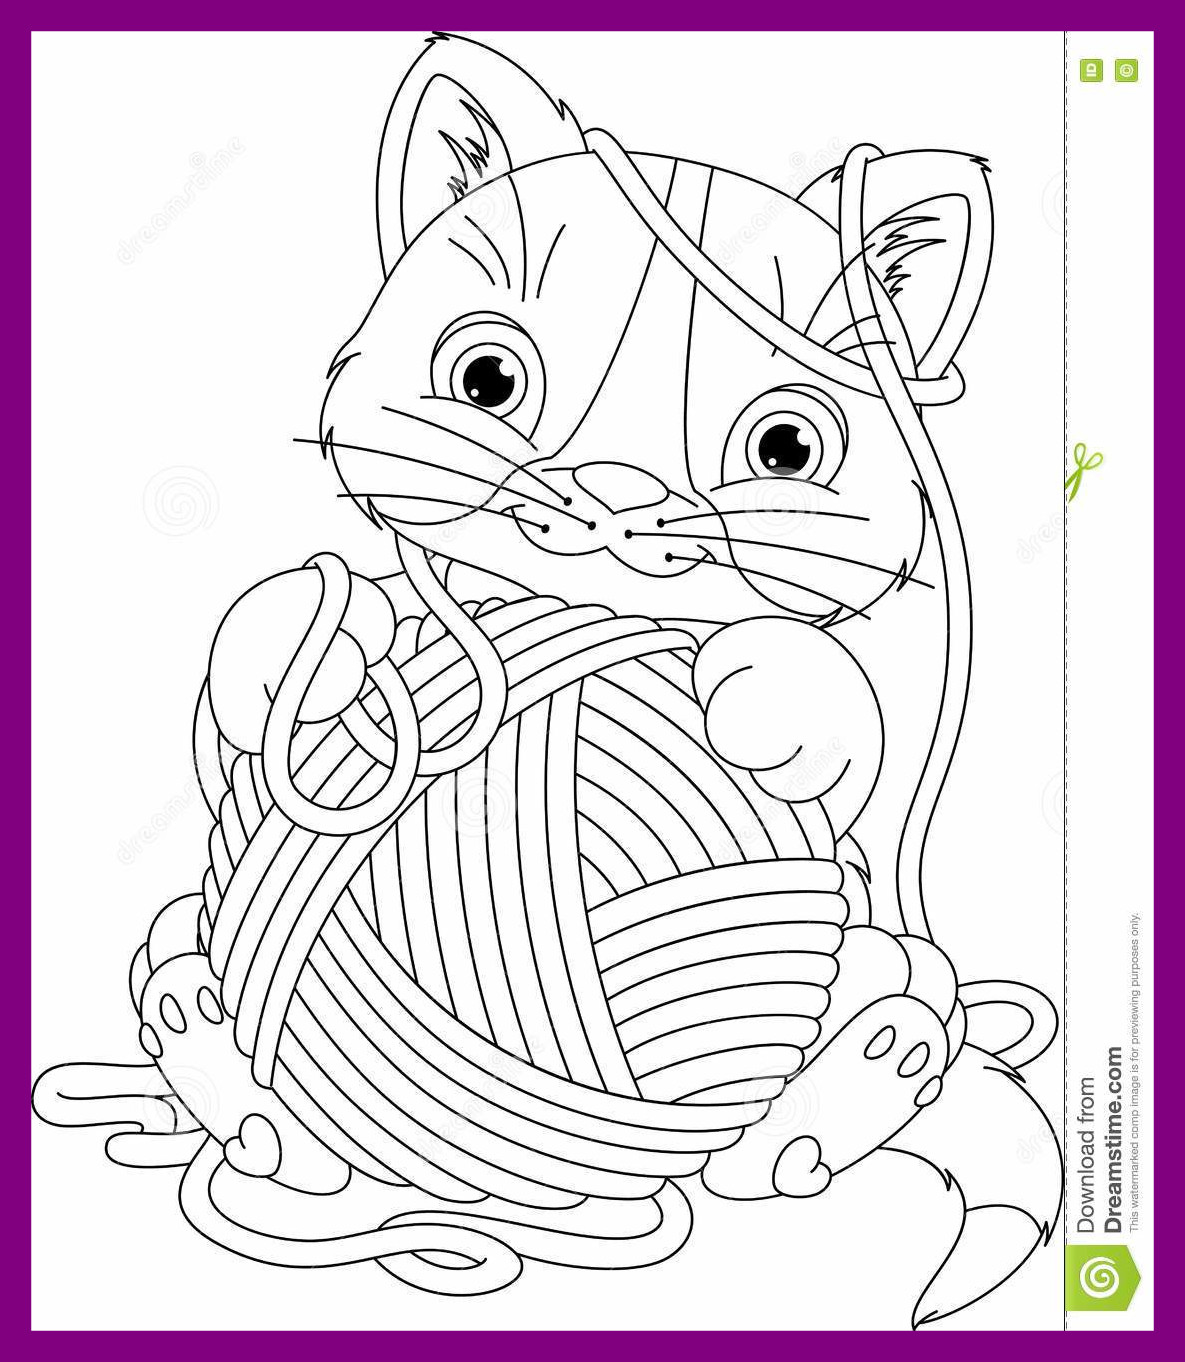 1185x1362 Shocking Kitten With Yarn Ball Coloring Page Stock Vector